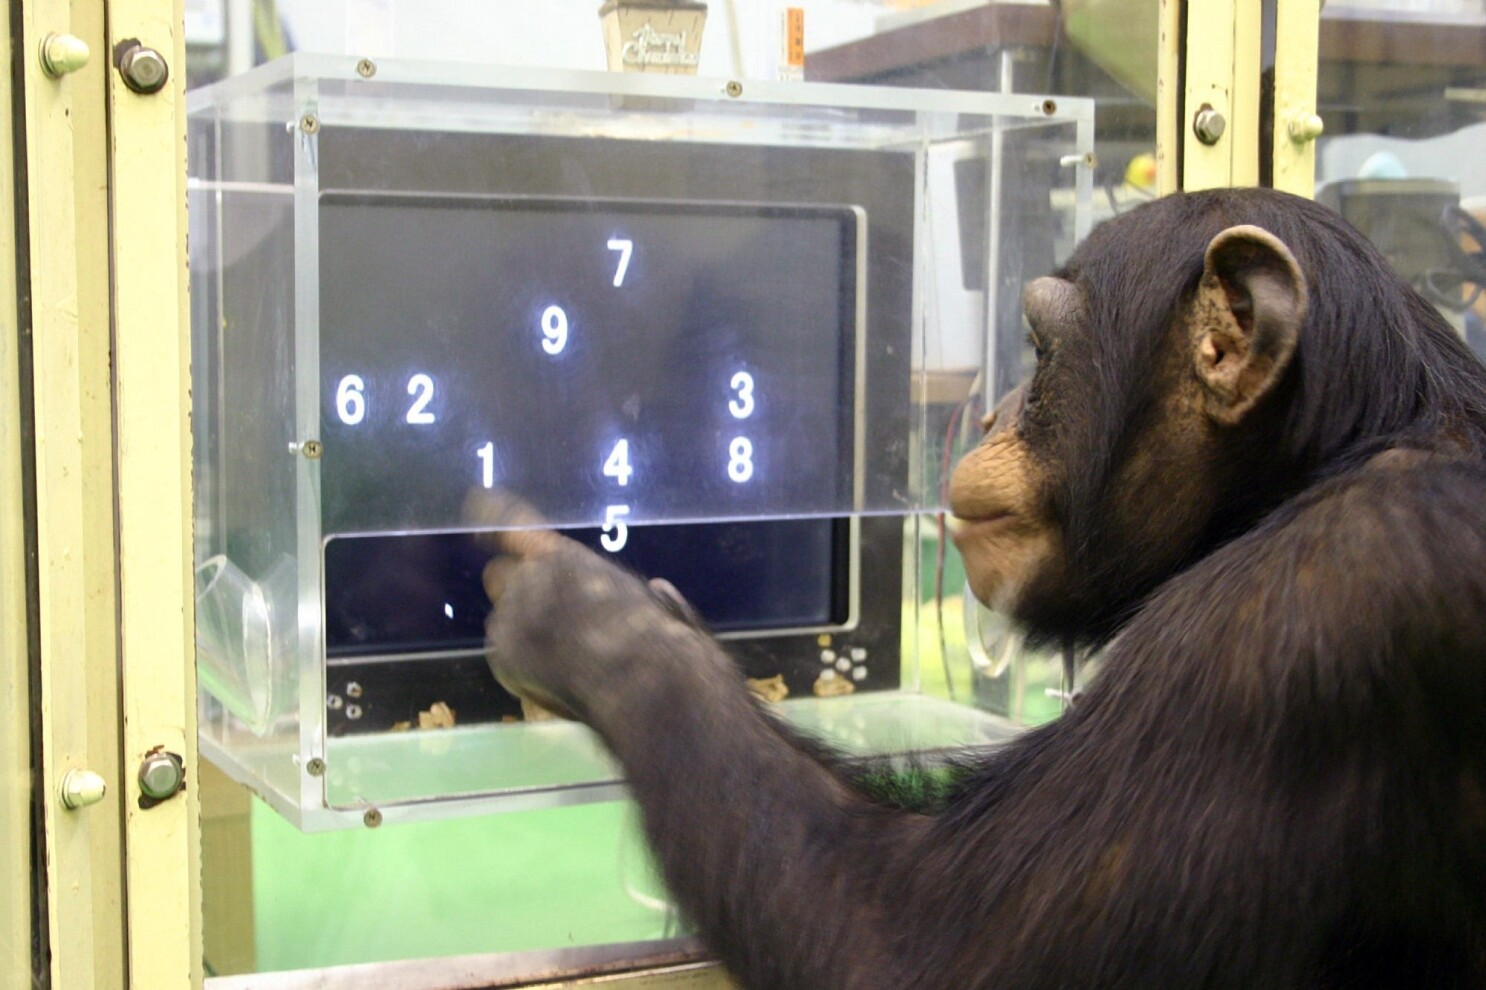 Chimpanzees make monkeys of humans in computer game - Los Angeles Times